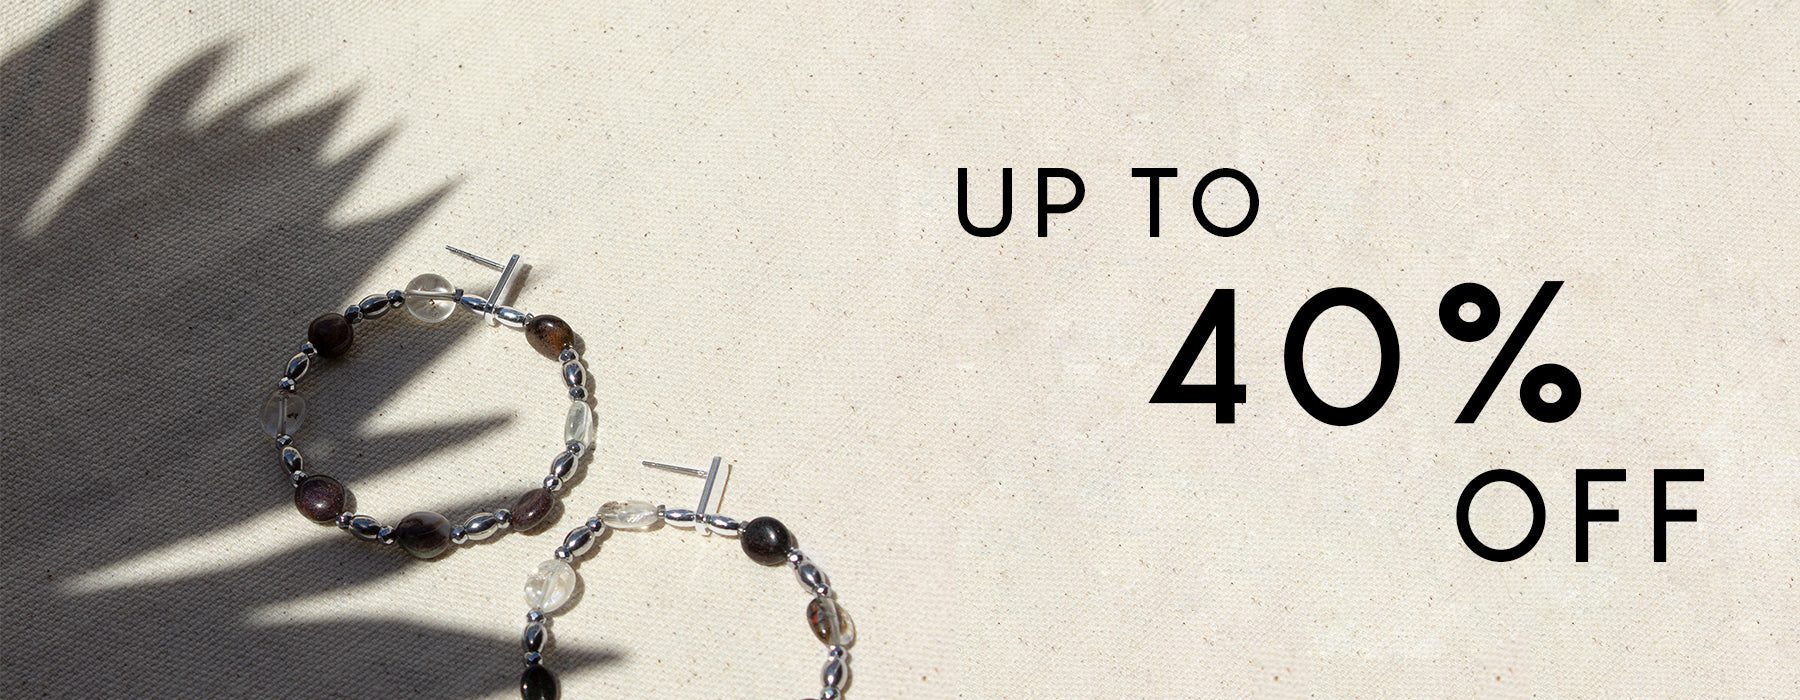 Add some statement earrings to your outfits. Up to 40% OFF on our wellDunn jewelry.